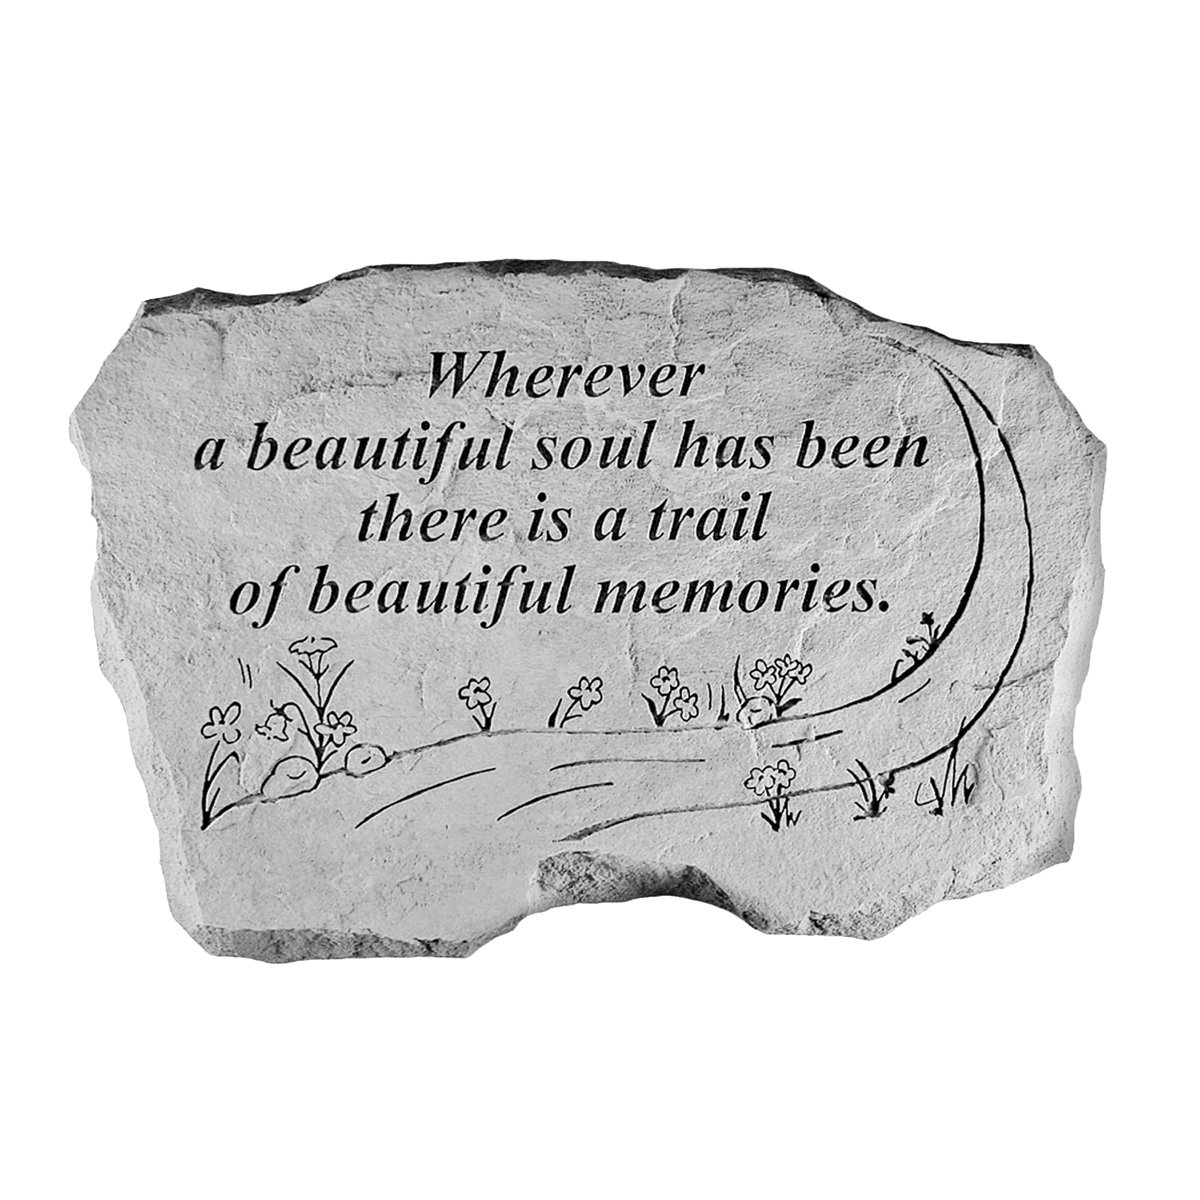 Kay Berry 63220 Wherever a Beautiful Soul… Memorial Garden Stone, Multicolor